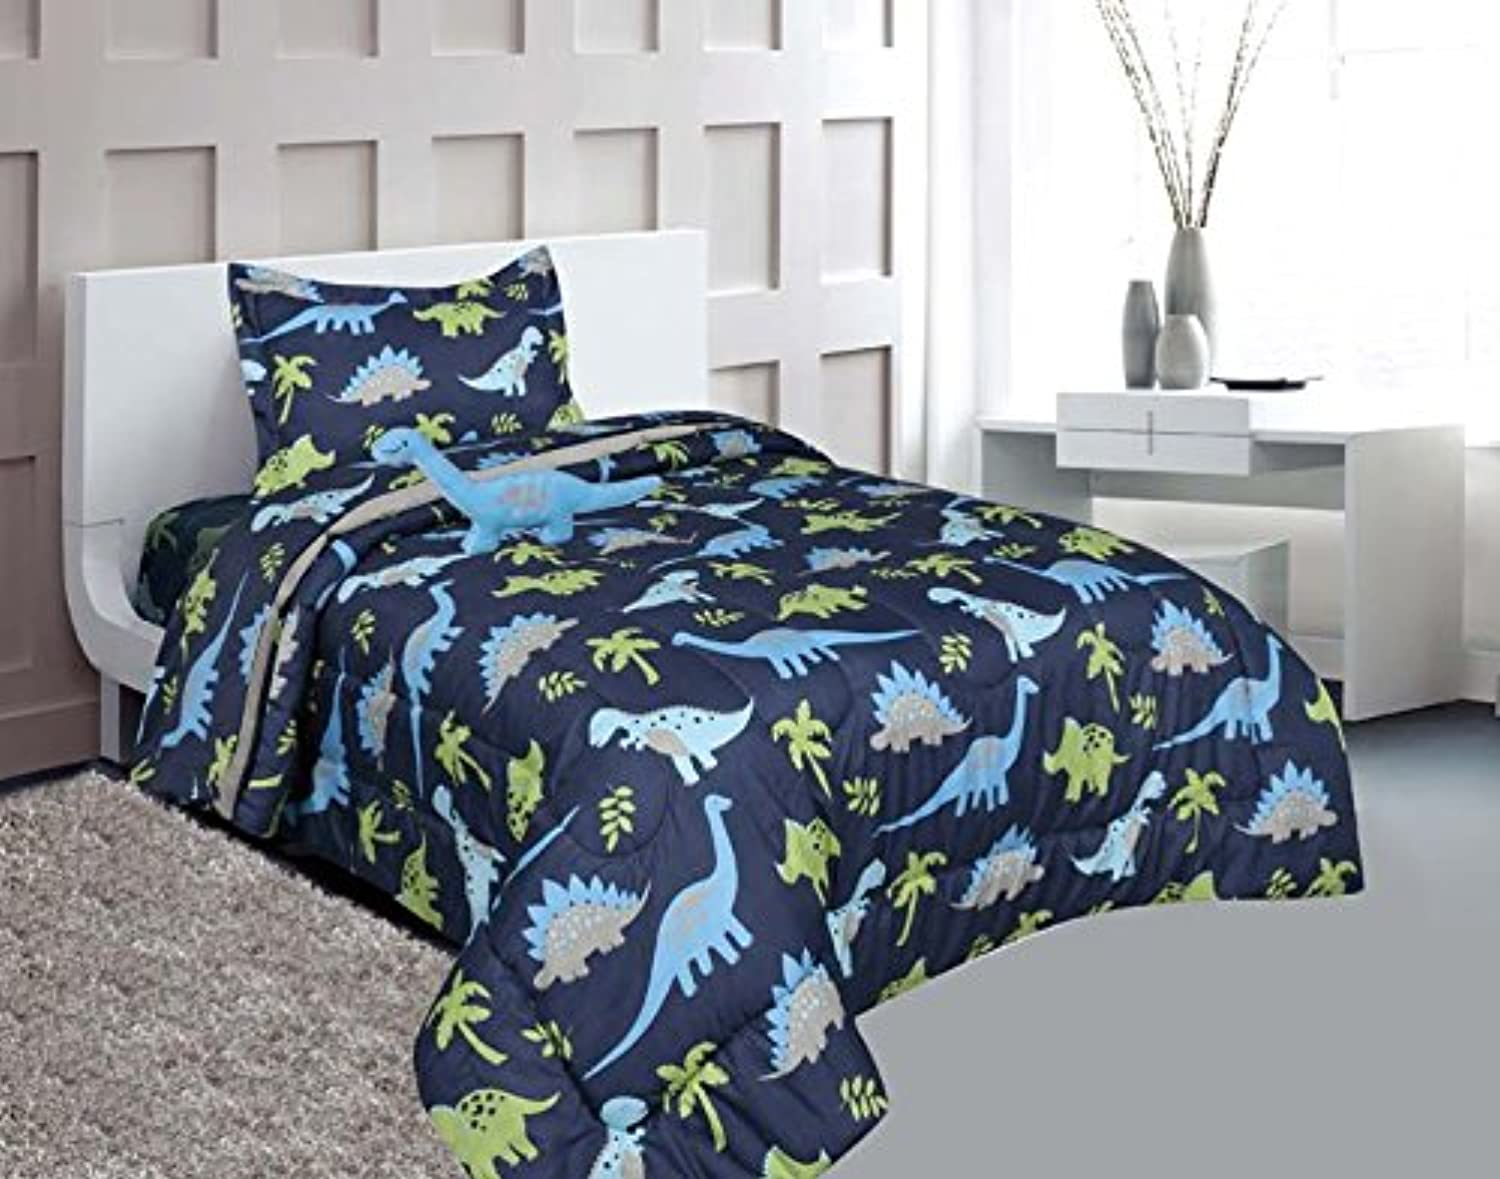 MB Home Collection Twin Size 6 pieces Printed bluee Lime green Design Comforter, Sheet Set with 1 Pillow Cushion Toy   Twin Size 6 Pcs Comforter bluee Dinosaur